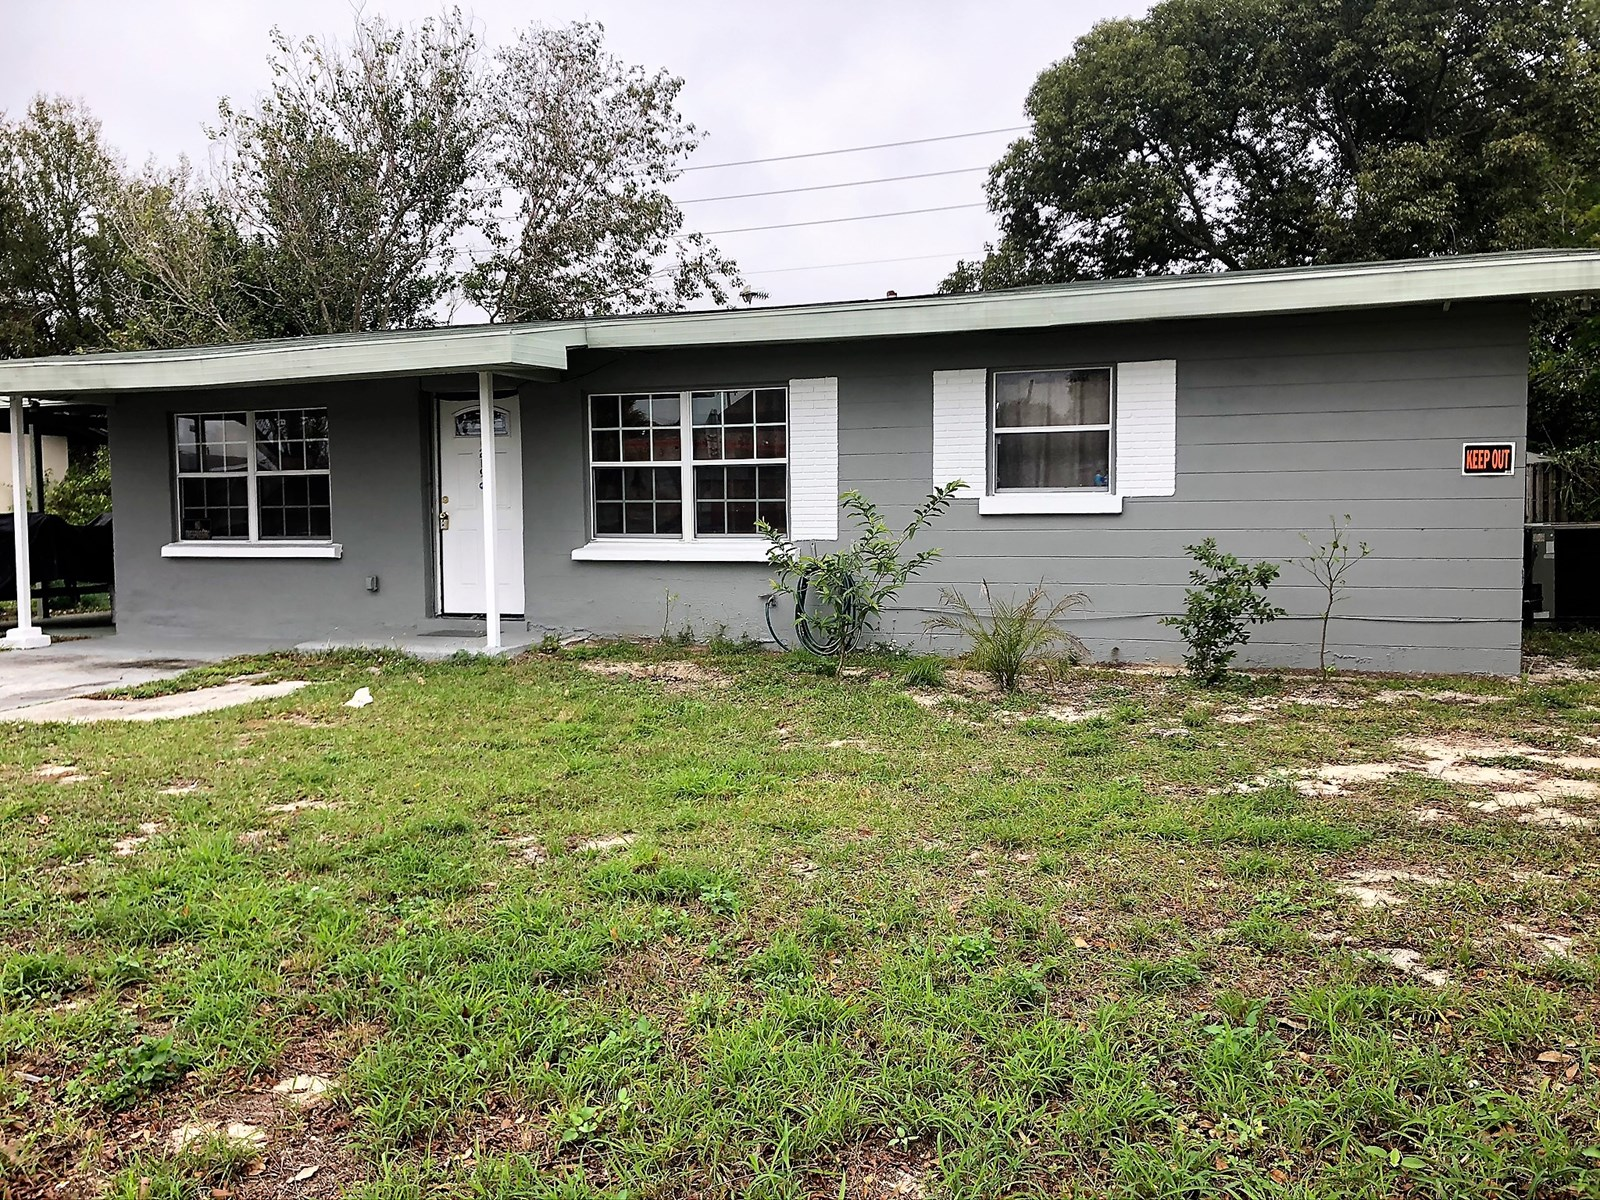 3/2 BLOCK HOME, LAKE WALES FLORIDA, CENTRAL FLORIDA, POLK